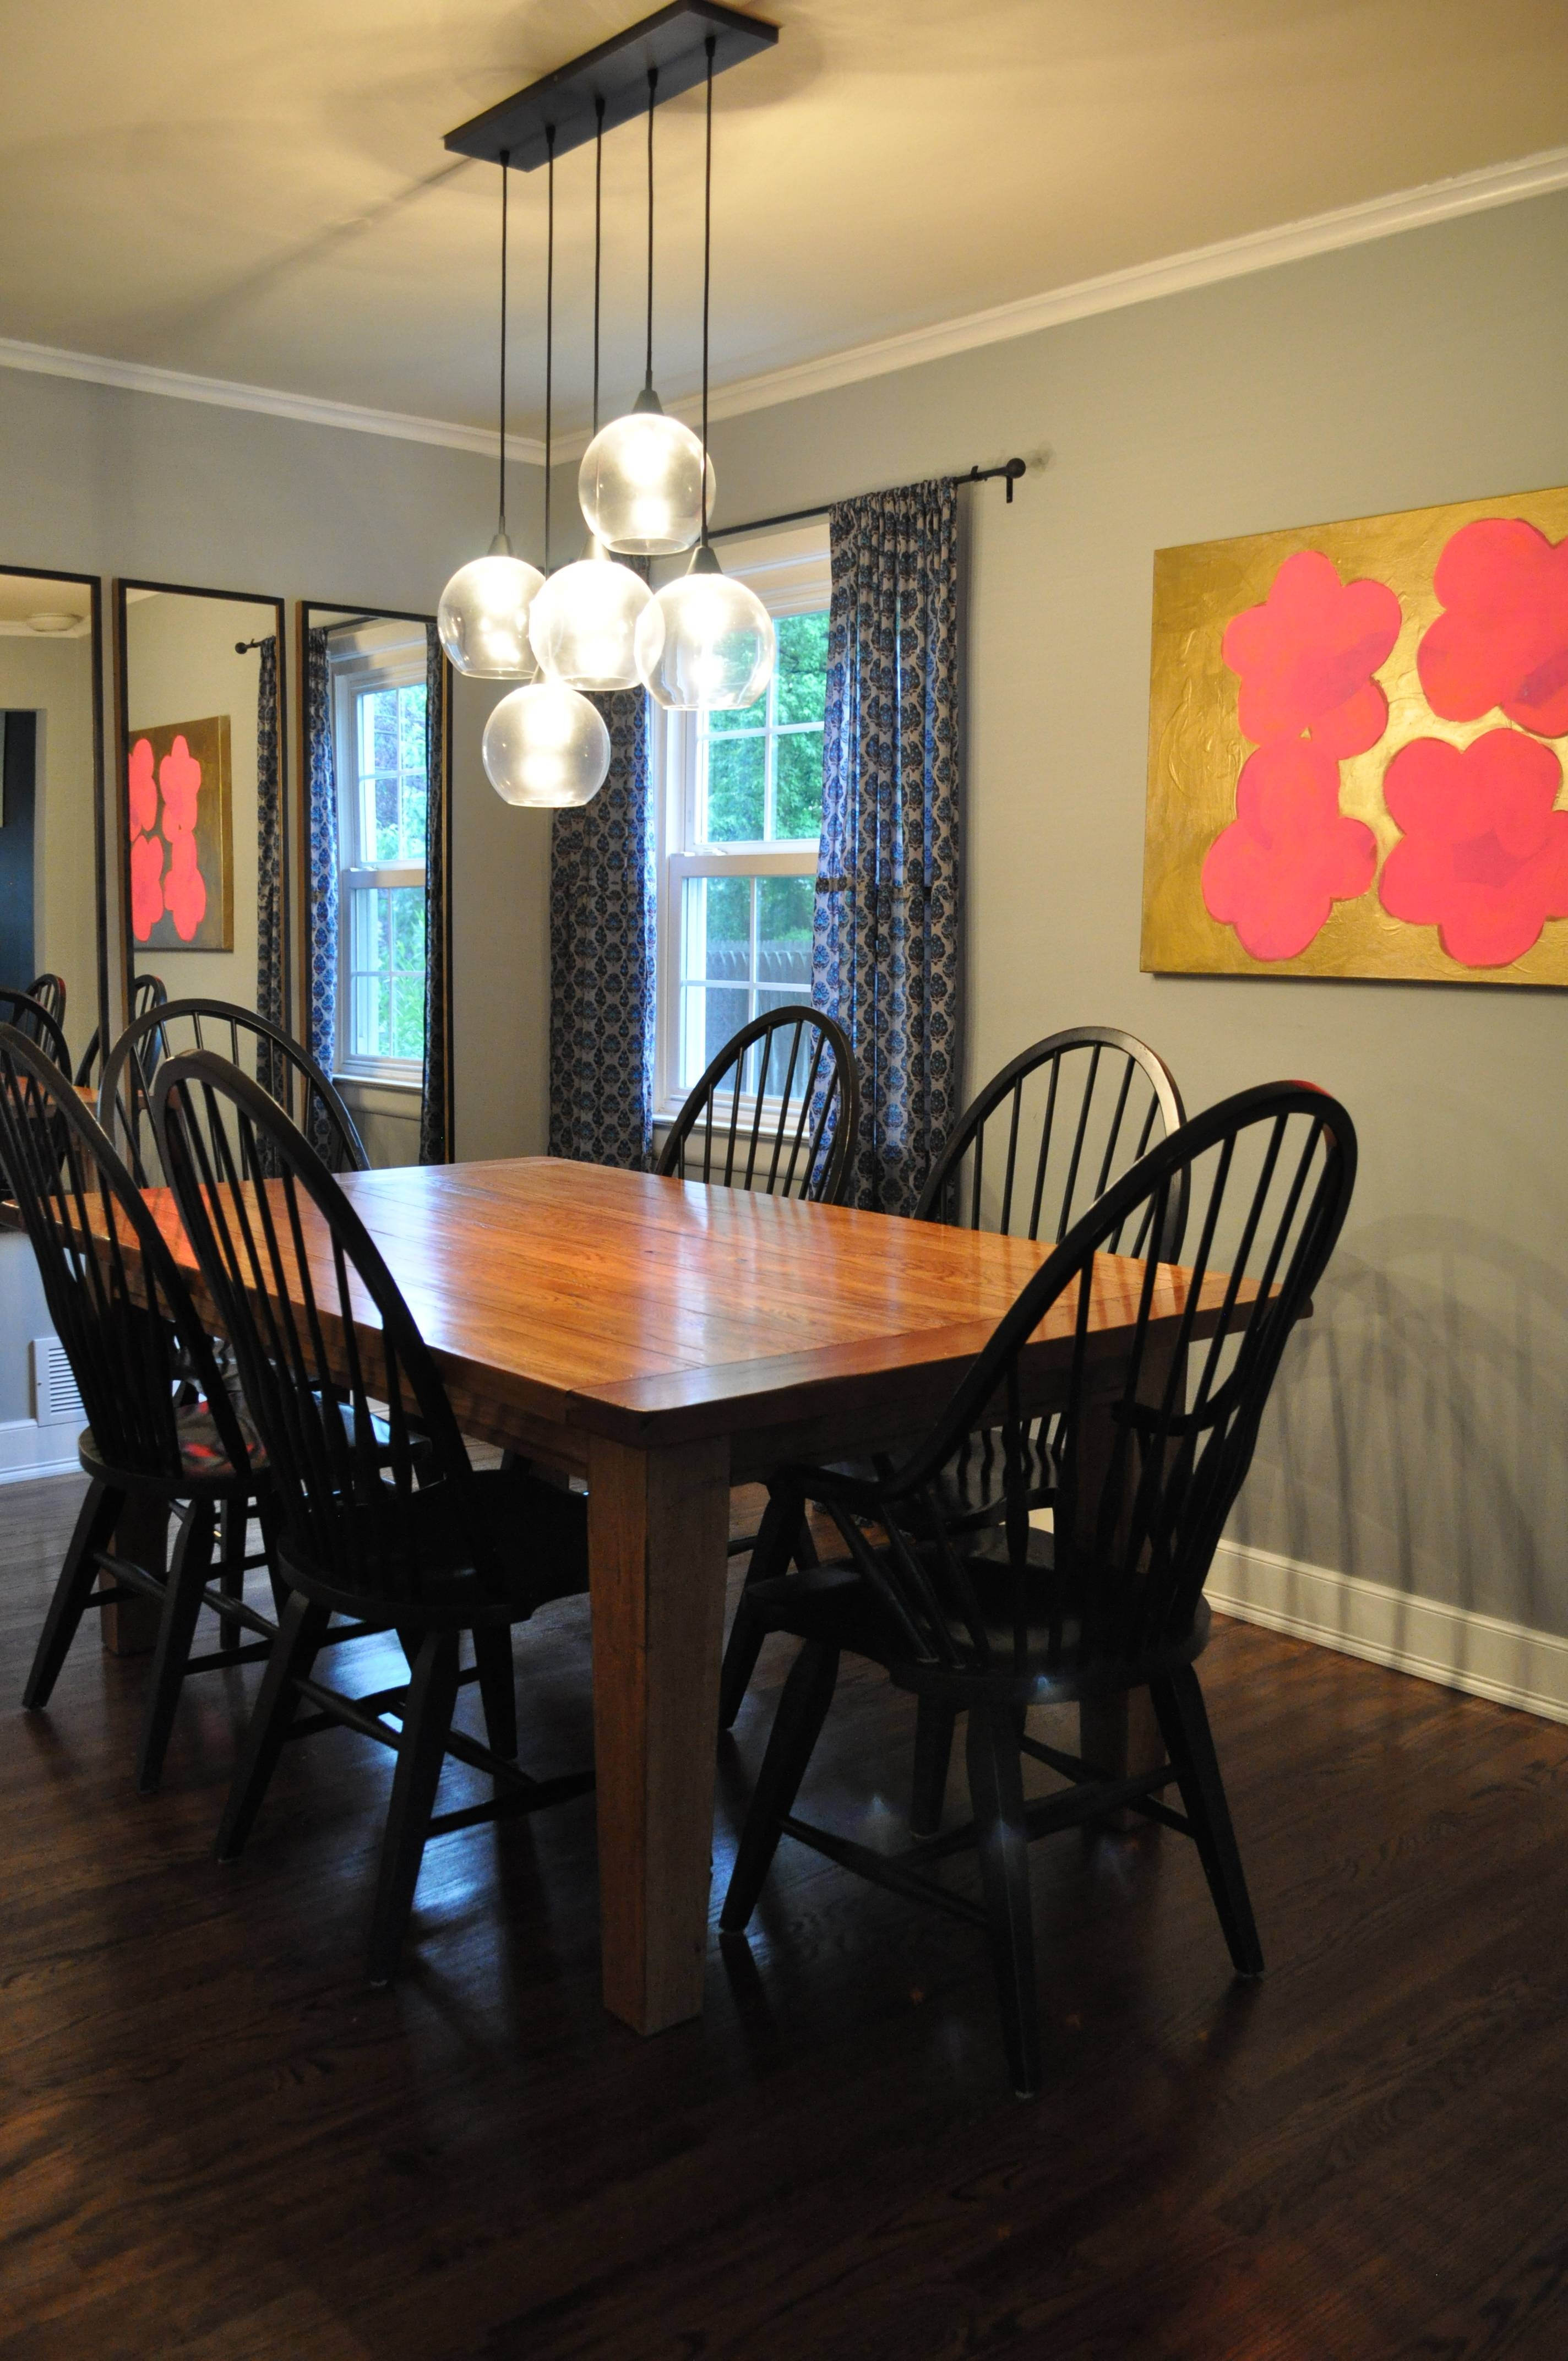 Pendant Lighting - Pendant Lighting Ideas with Cb2 Lighting Pendants (Image 6 of 15)